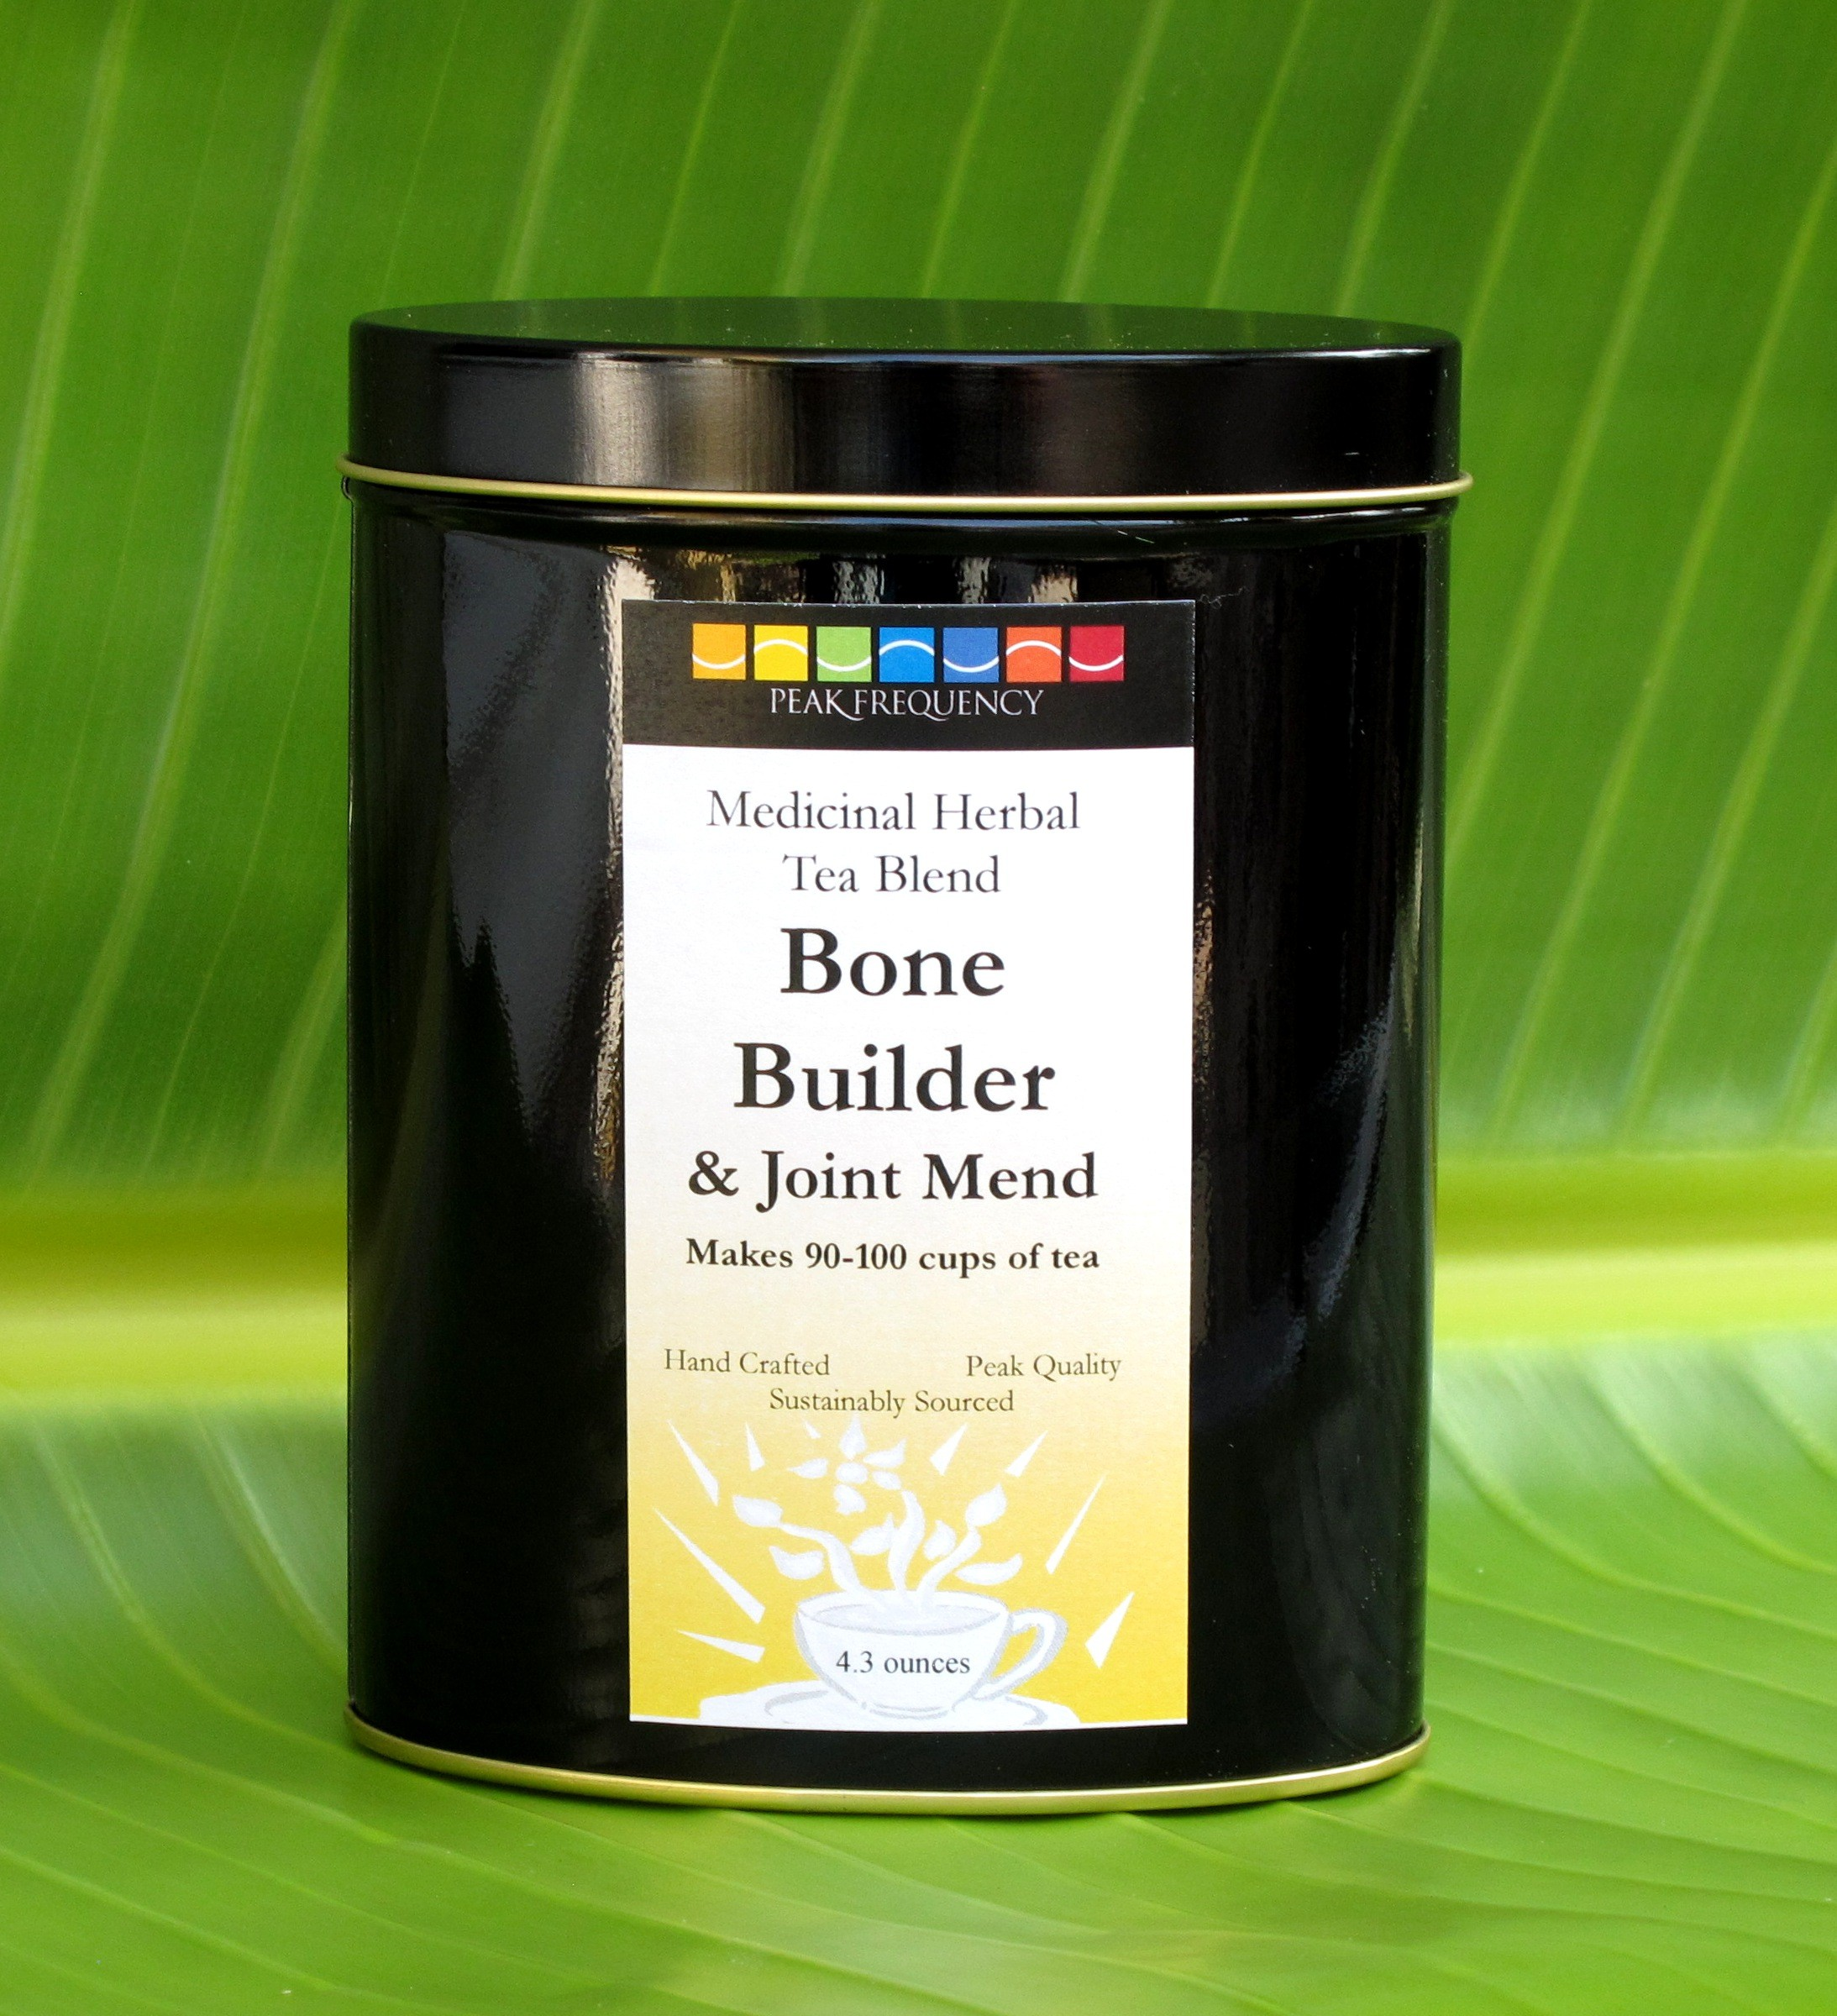 Bone Builder & Joint Mend Medicinal Herbal Tea Blend - 2.5 oz